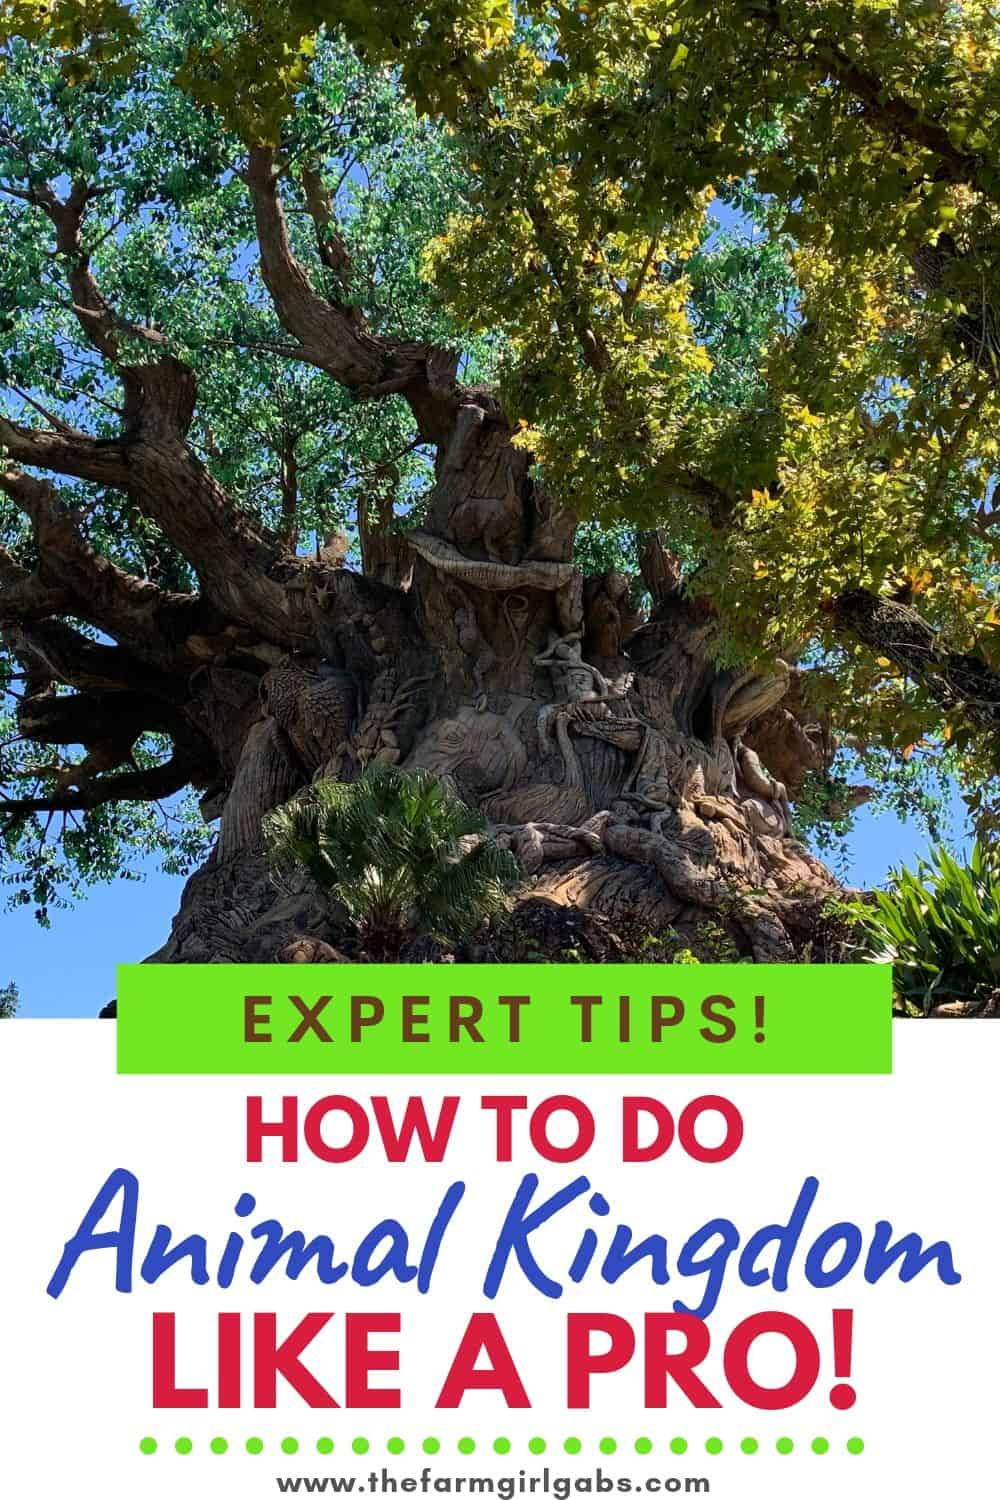 The Best tips for visiting Animal Kingdom. Follow these Animal Kingdom pro tips to plan you day at the park like an expert. #animalkingdom #animalkingdomtips #disneytips